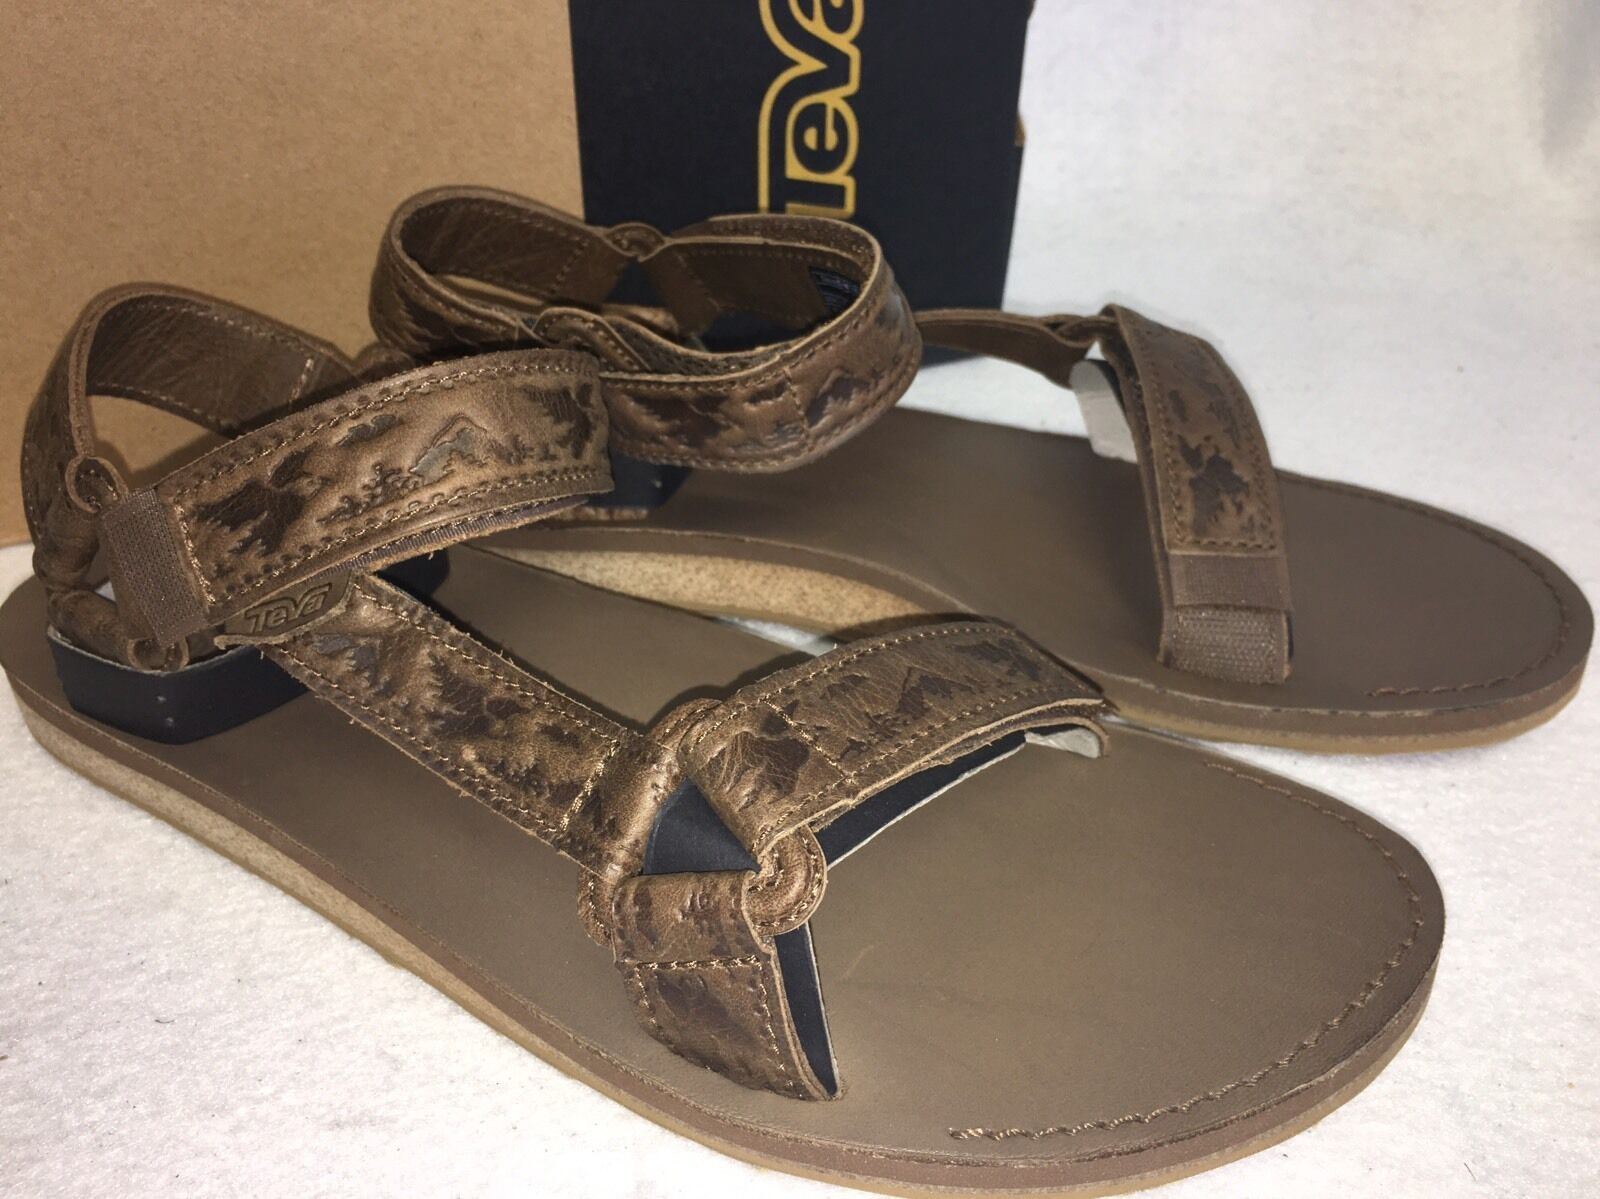 Teva Original Universal Crafted Leather Brown Sandals Mens shoes 1010318 Eagle